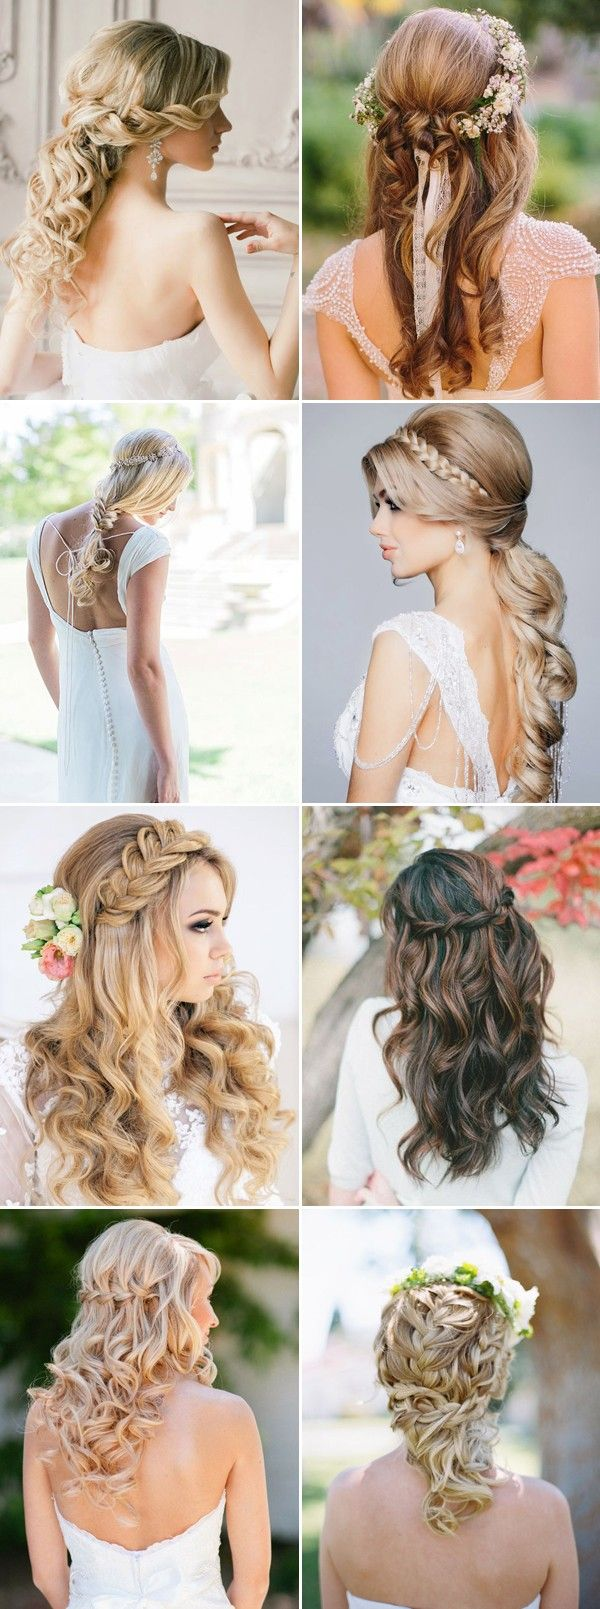 Best 519 hairstyles images on Pinterest | Hair and beauty ...